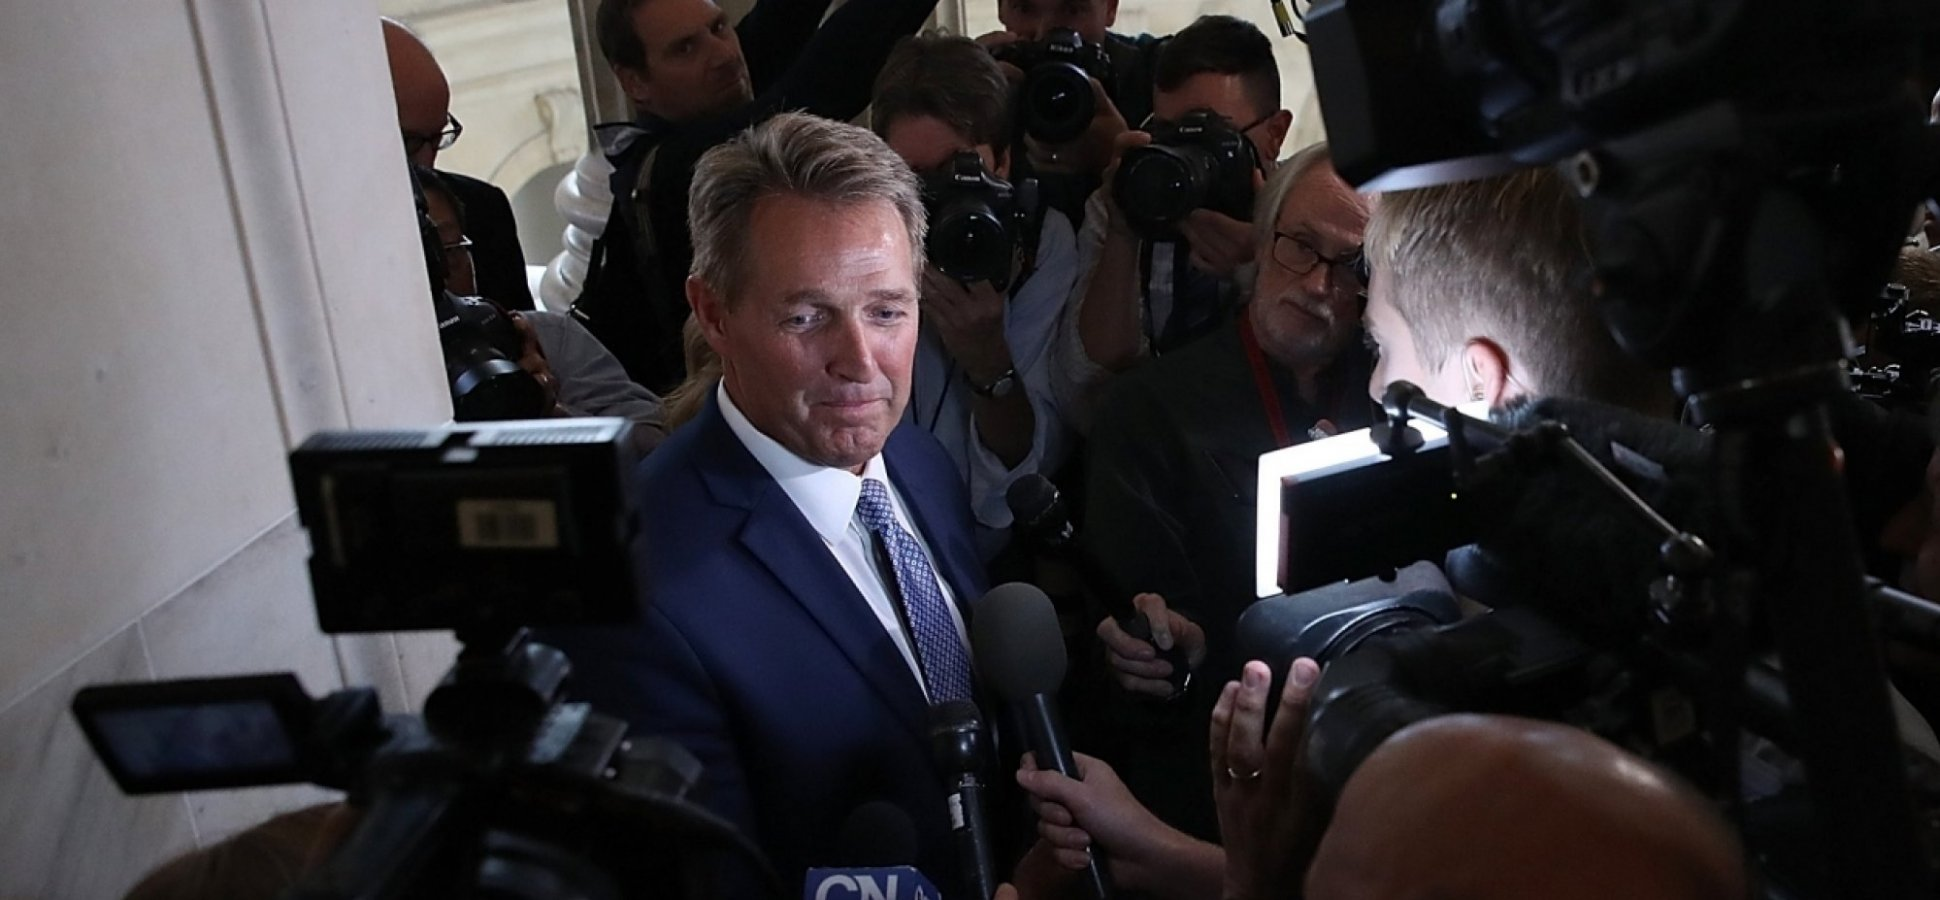 Senator Jeff Flake Used These 6 Public-Speaking Tools to Build His Headline-Grabbing Speech